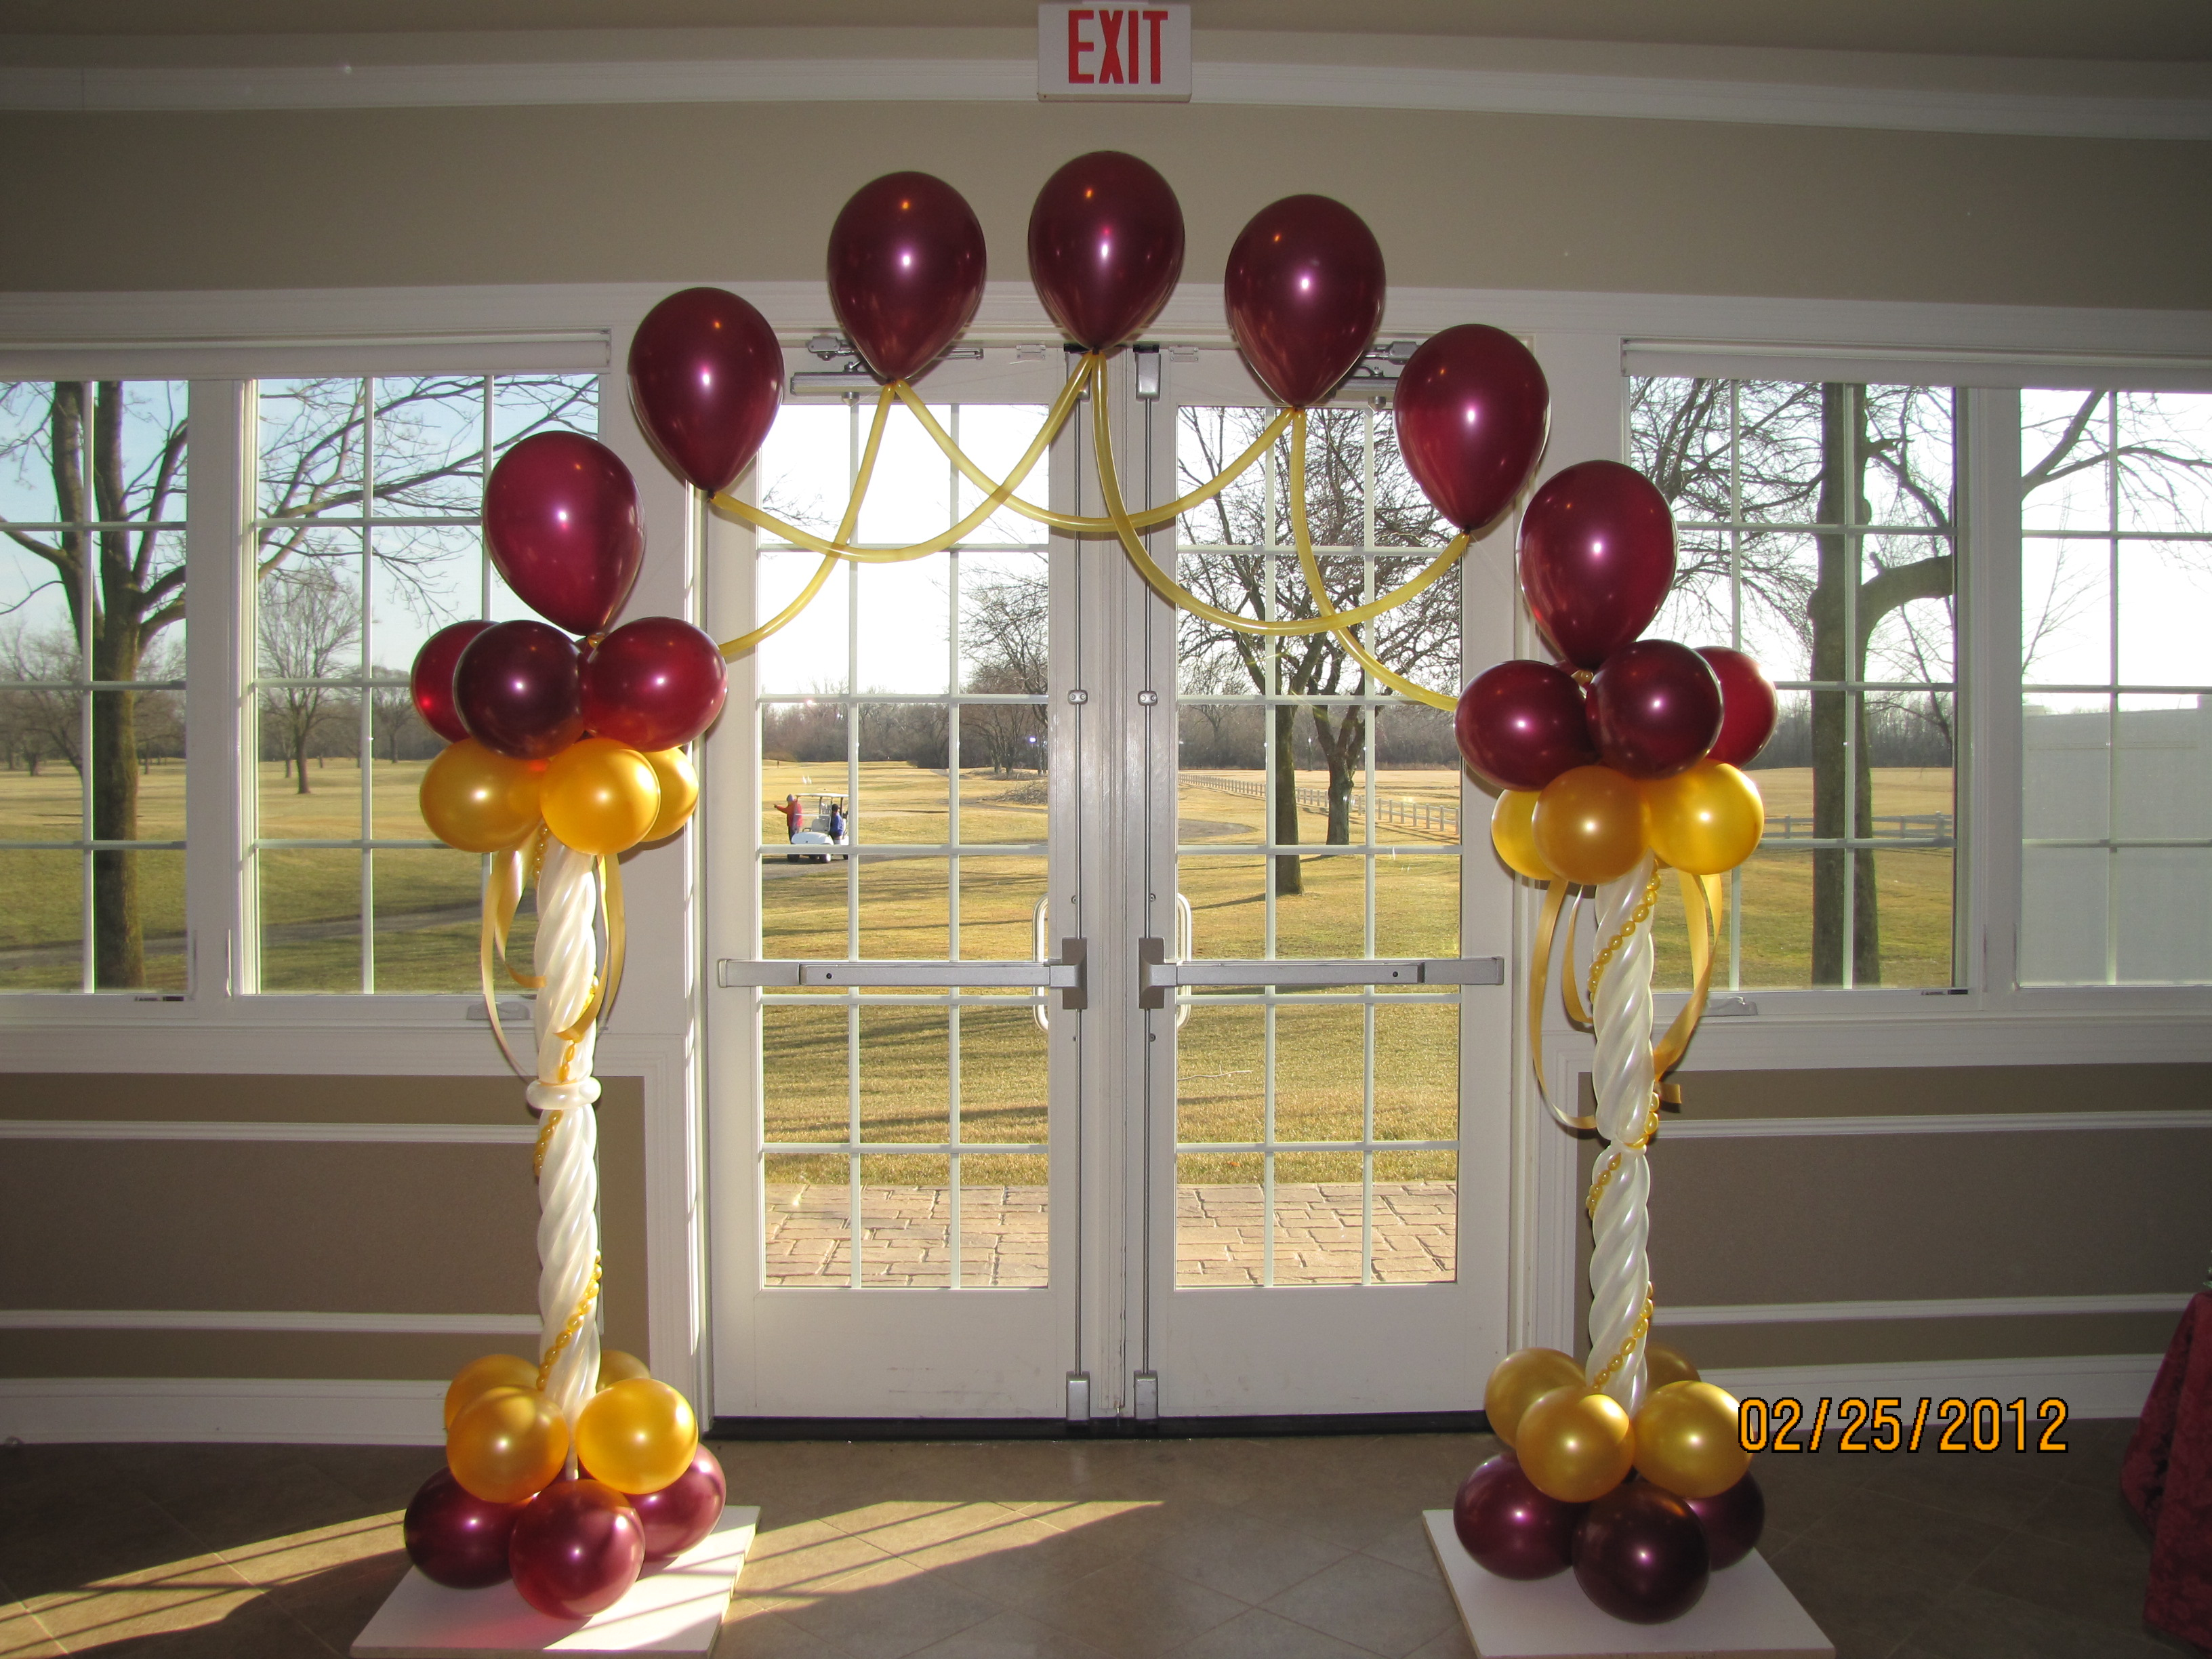 Wedding balloon decor amytheballoonlady for Ballon wedding decoration